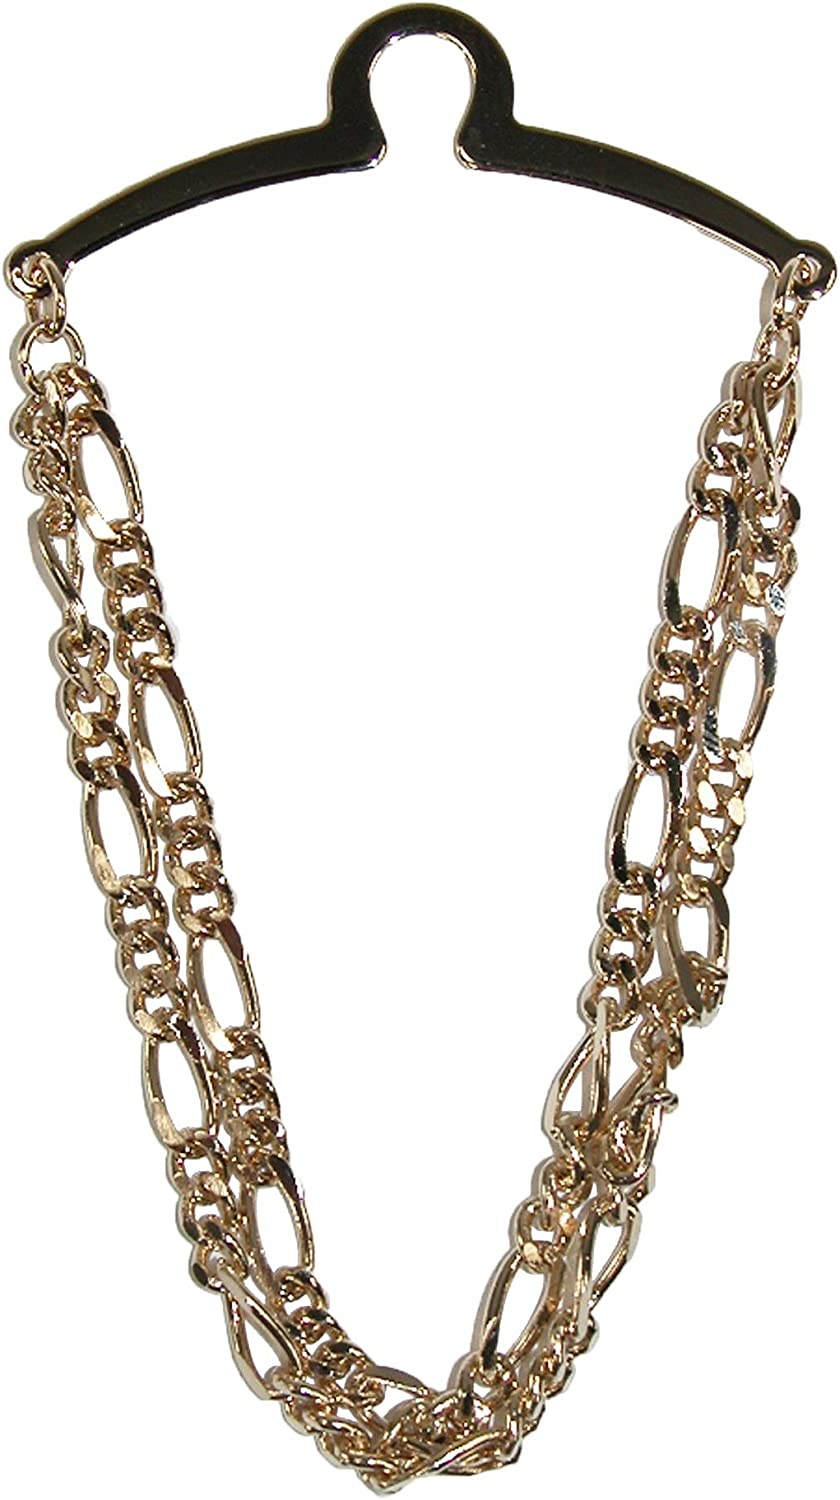 Competition Inc. Men's Double Figaro Style Link Tie Chain, Gold